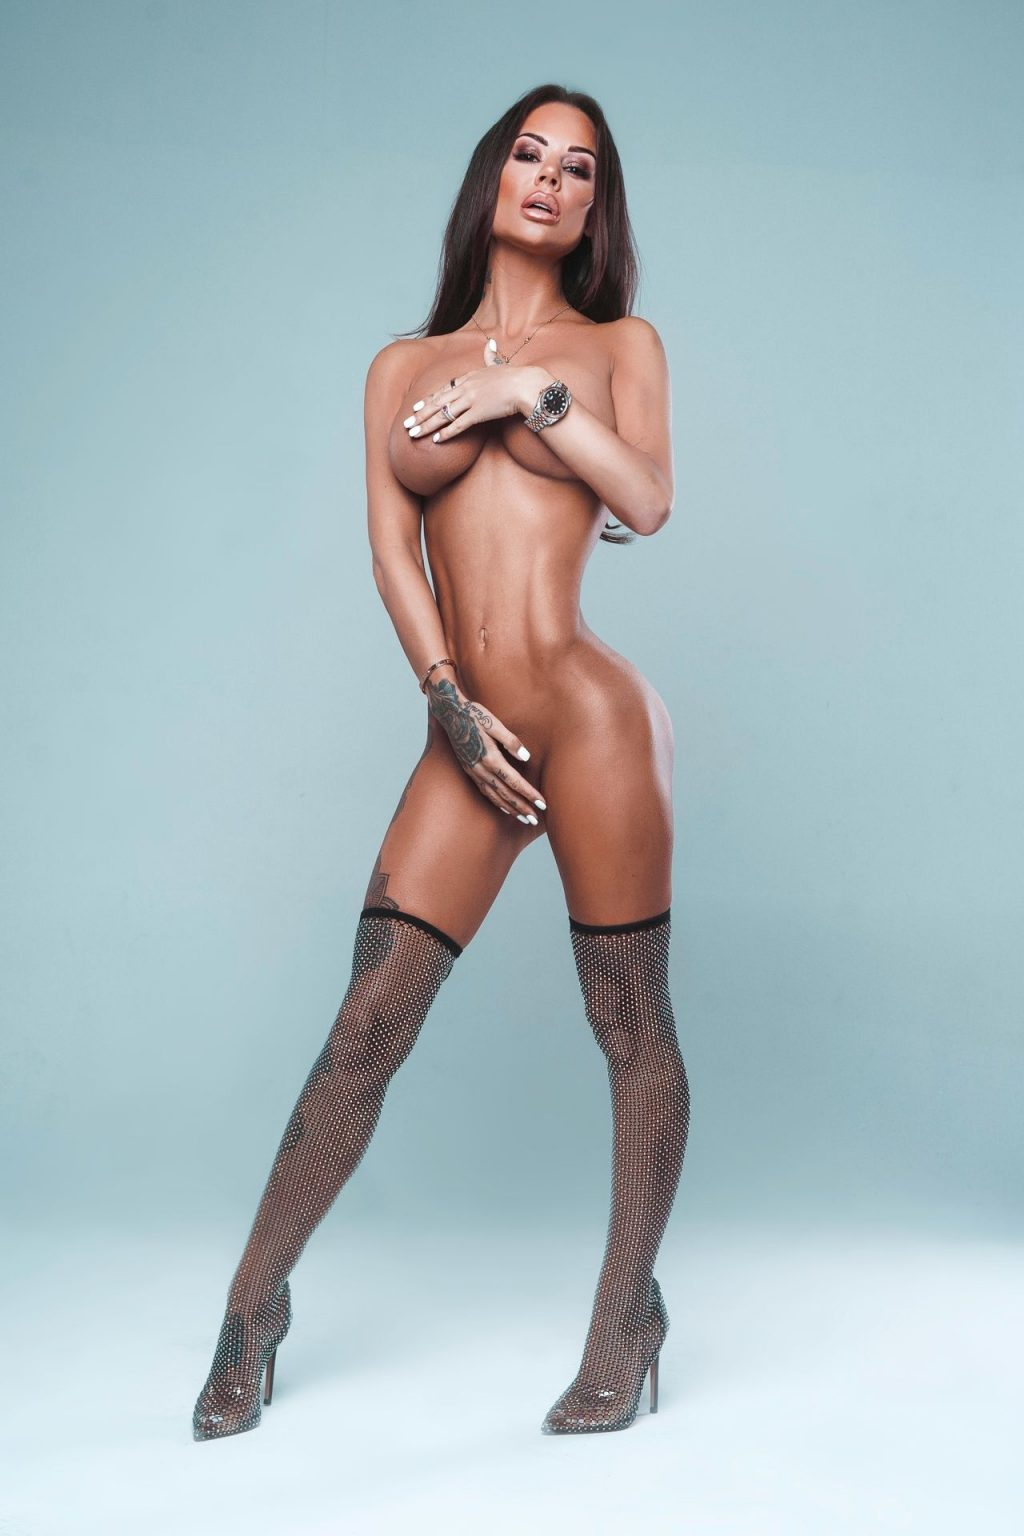 Geordie Shore's Chantelle Connelly Strips Naked for Glam Shoot (9 Photos)